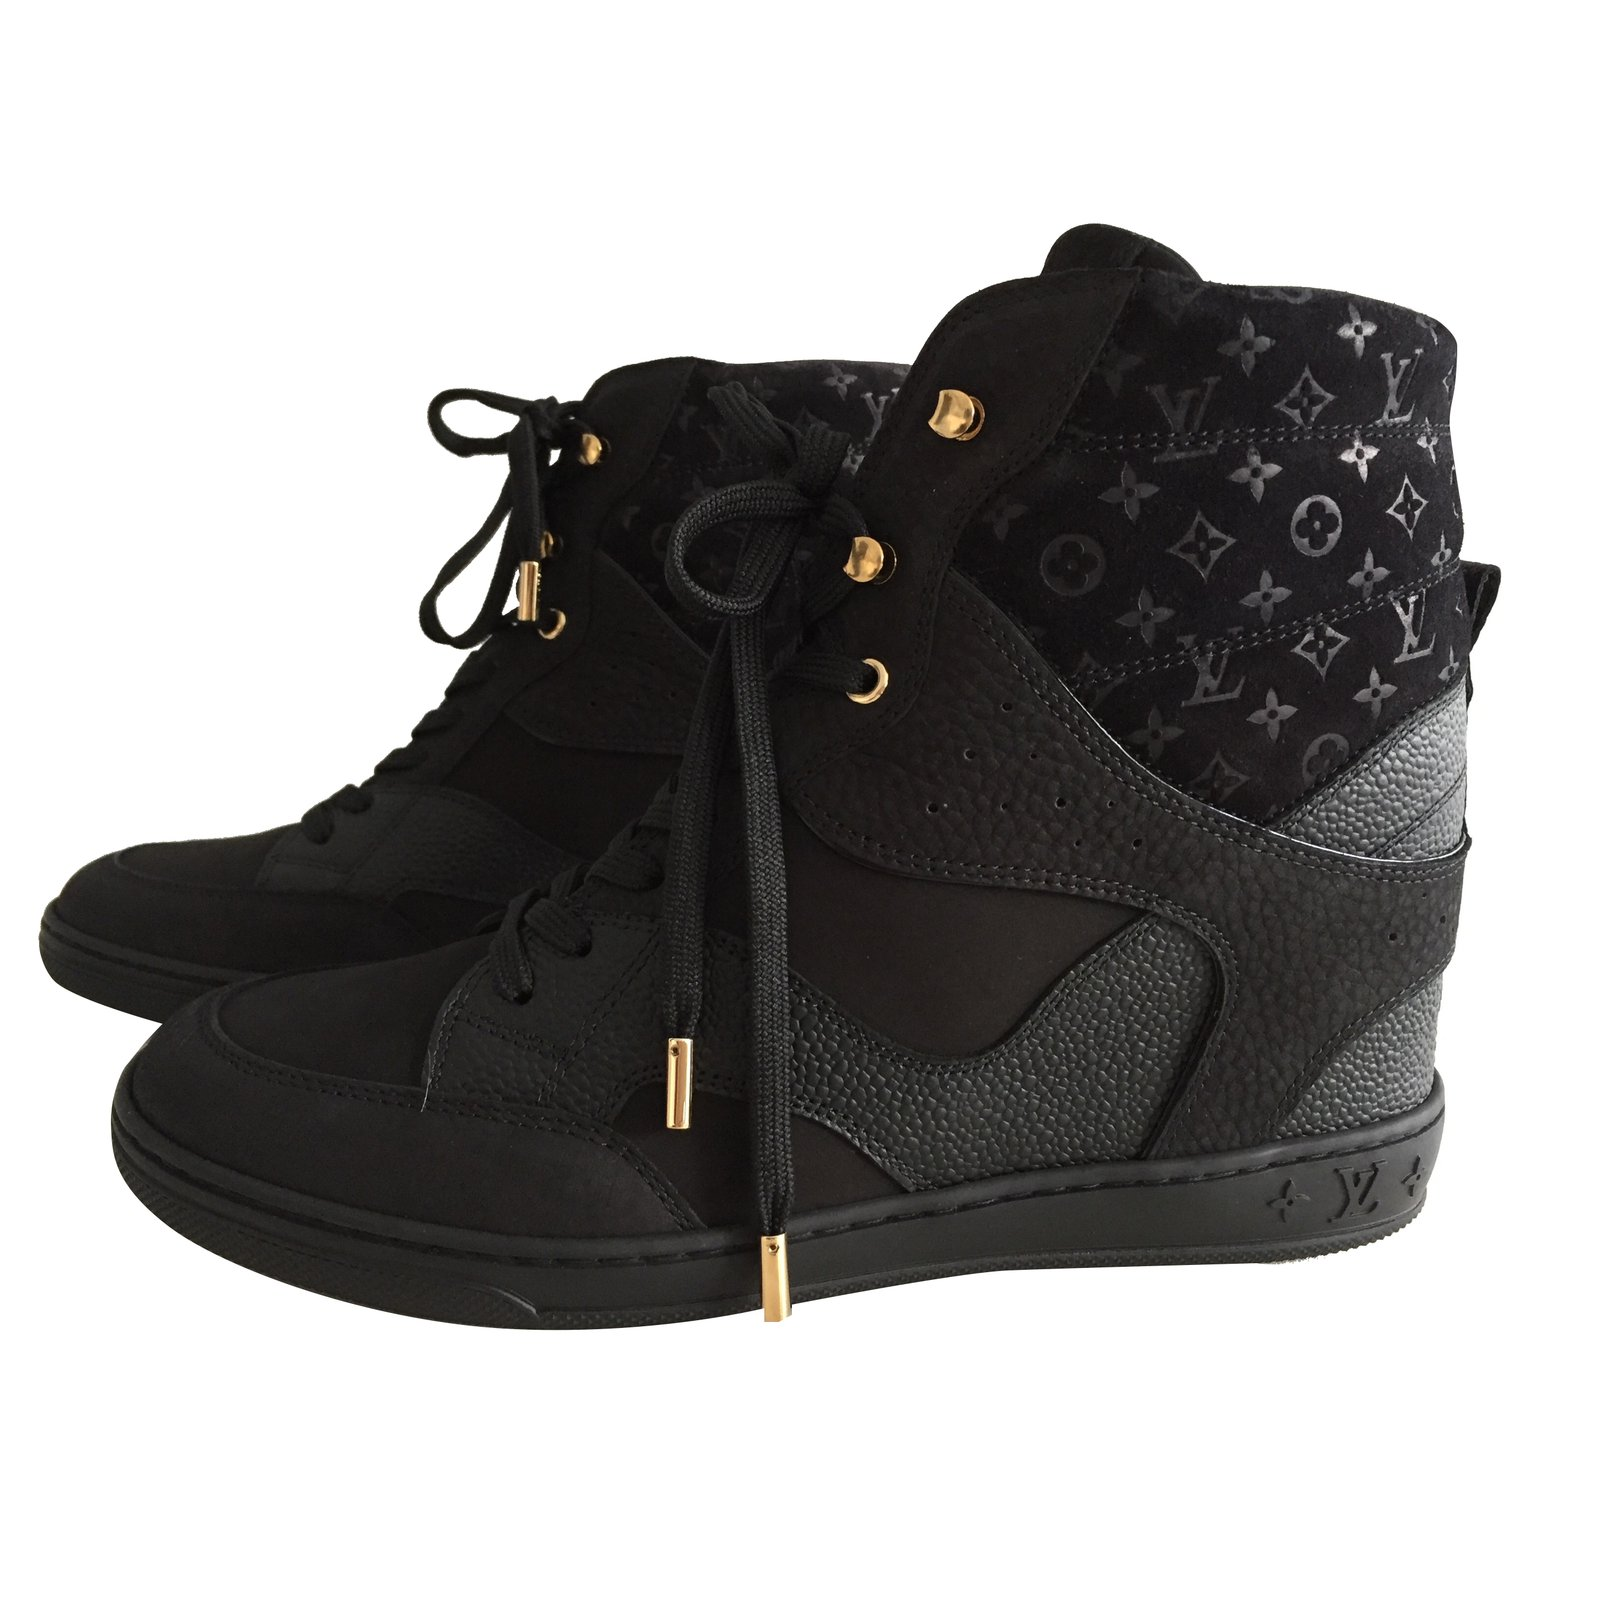 Louis Vuitton Cliff Sneakers Sneakers